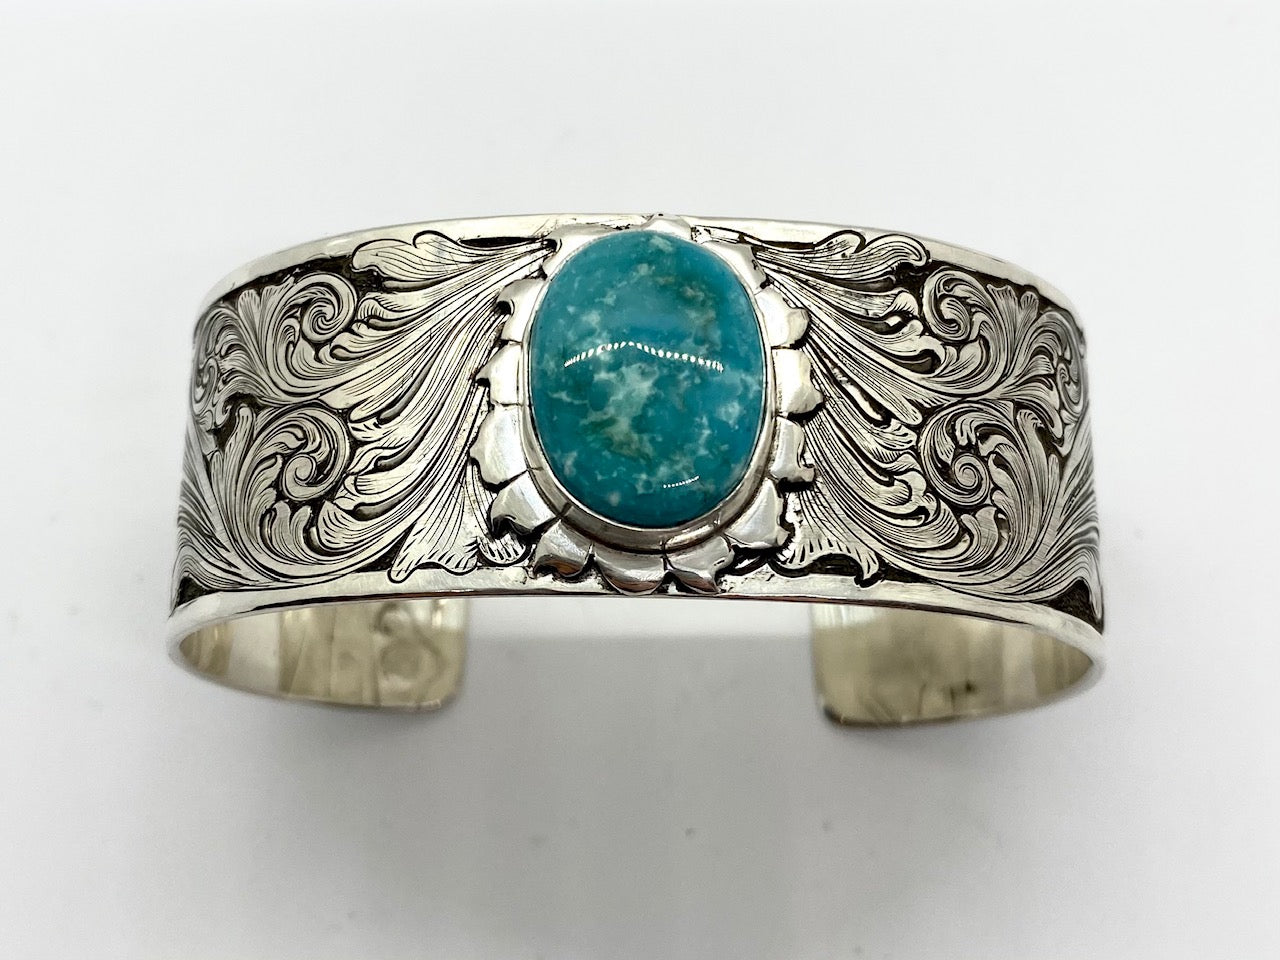 Engraved Sterling Silver Bracelet with Misty Blue turquoise stone top view